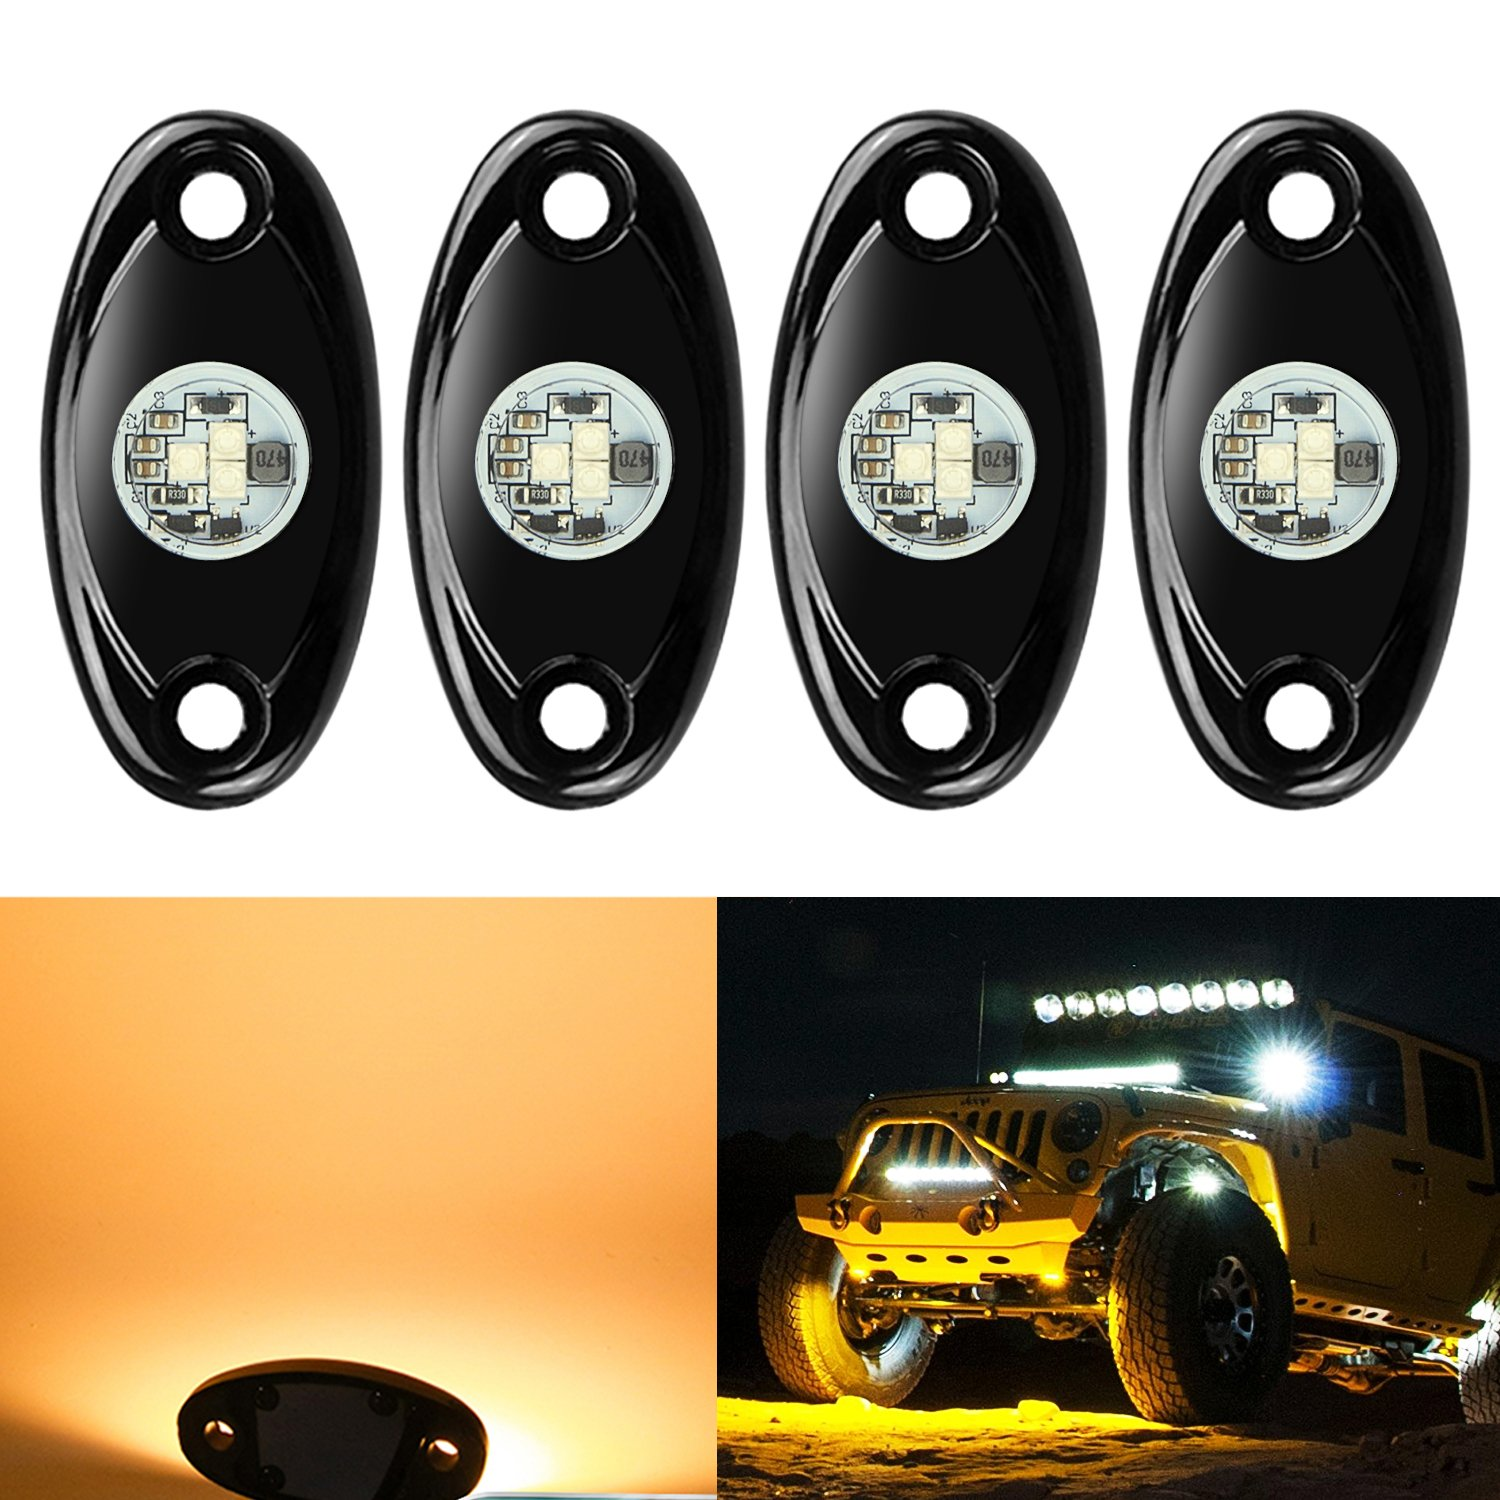 4 Pods Led Rock Lights Kit Ampper Waterproof Underglow Sale 10pcs Universal Off Road Jeep Light Bar Wiring Harness Neon Trail Rig For Car Truck Atv Utv Baja Raptor Offroad Boat Lamp